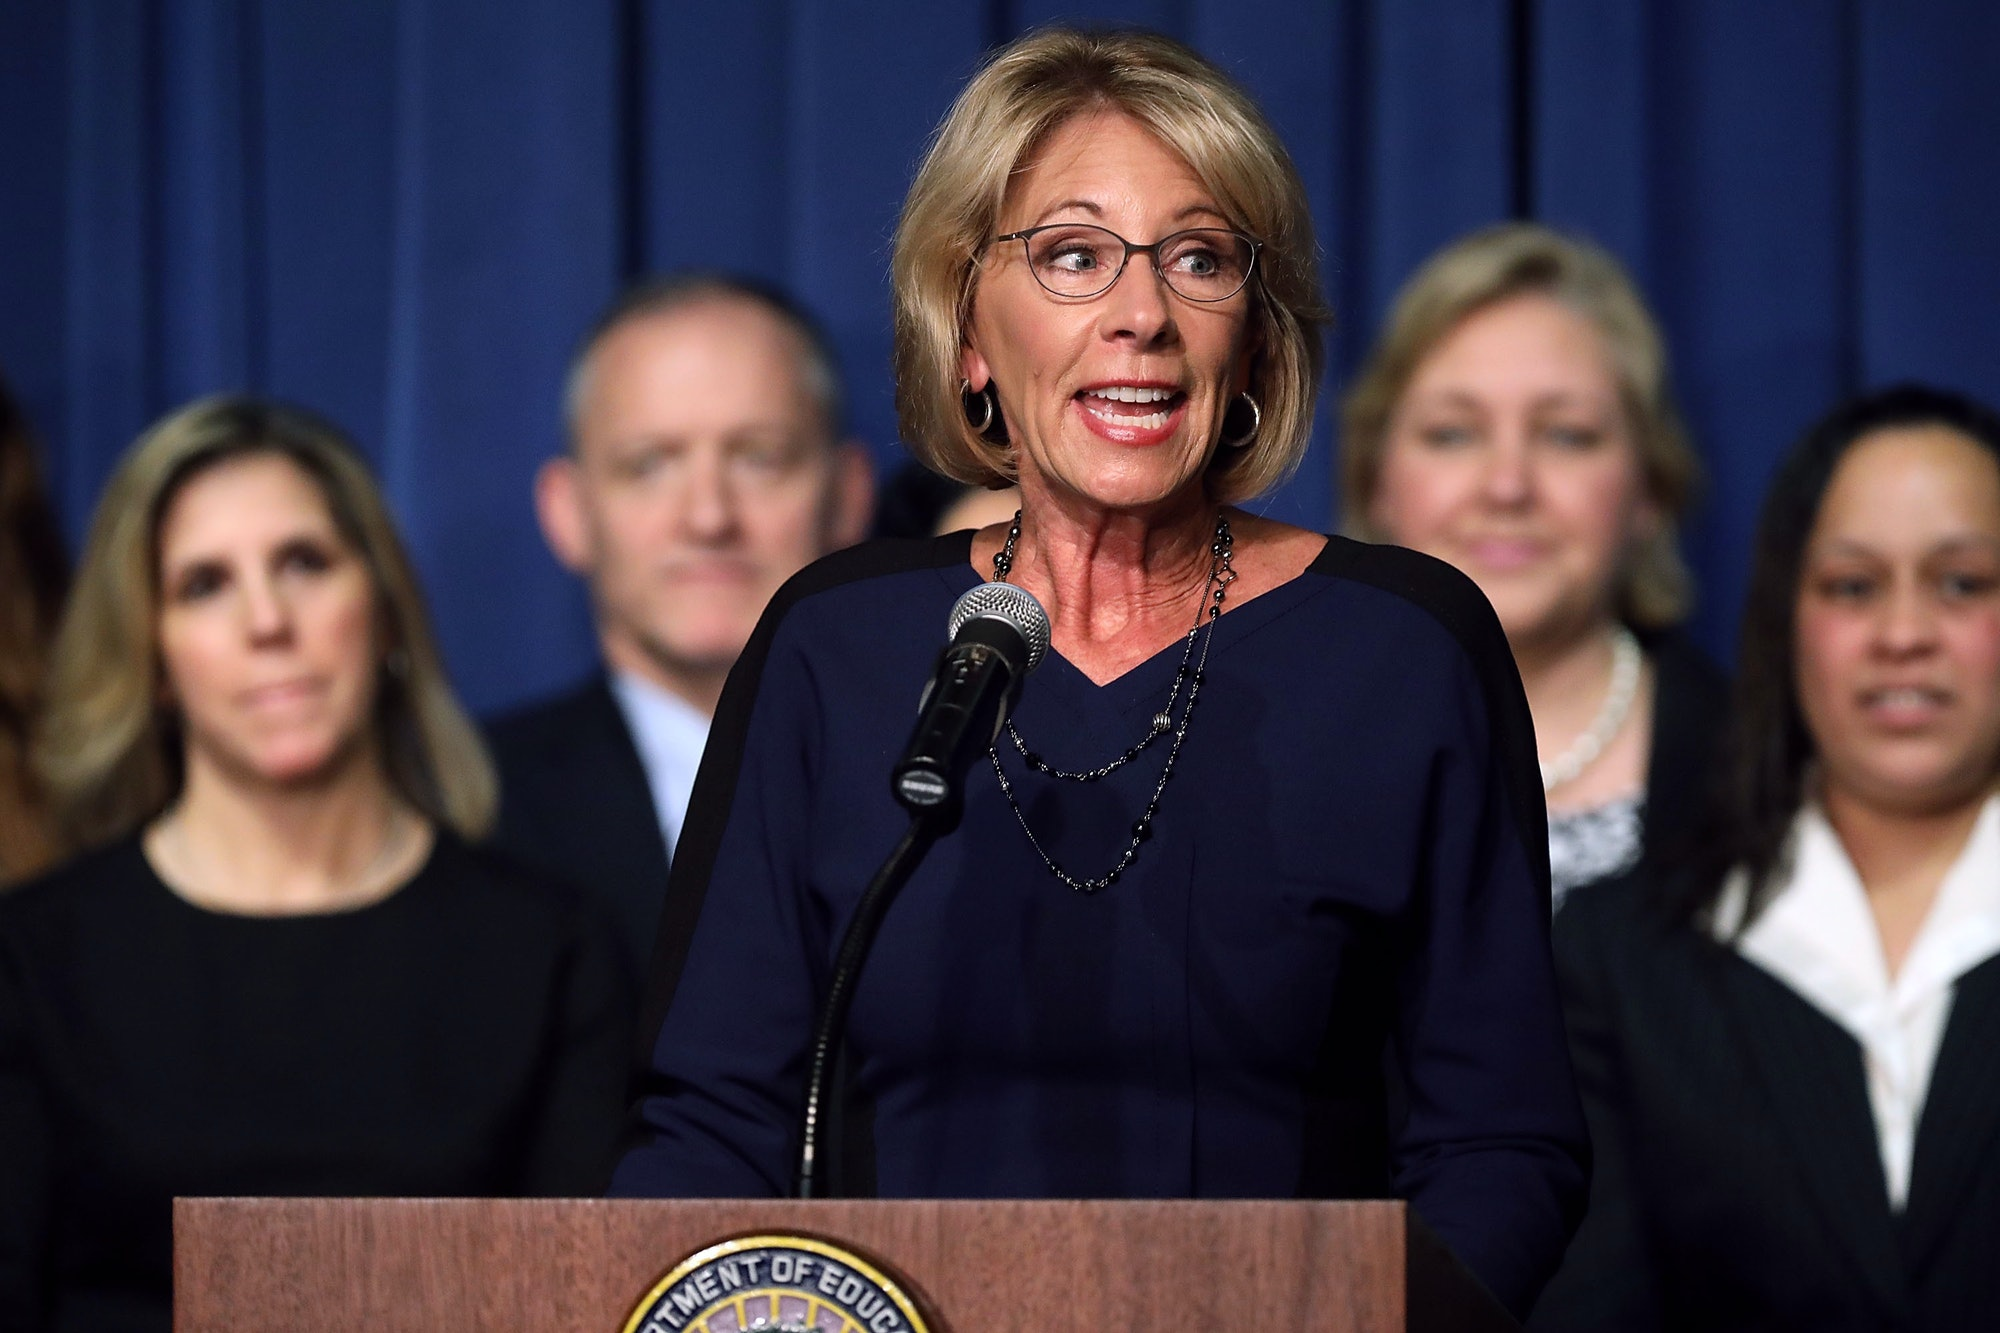 Education Secretary Betsy DeVos delivers remarks to employees on her first day on the job at the Department of Education February 8,2017in Washington, DC. DeVos was confirmed by the Senate after Vice President Mike Pence cast a tie-breaking vote Tuesday.